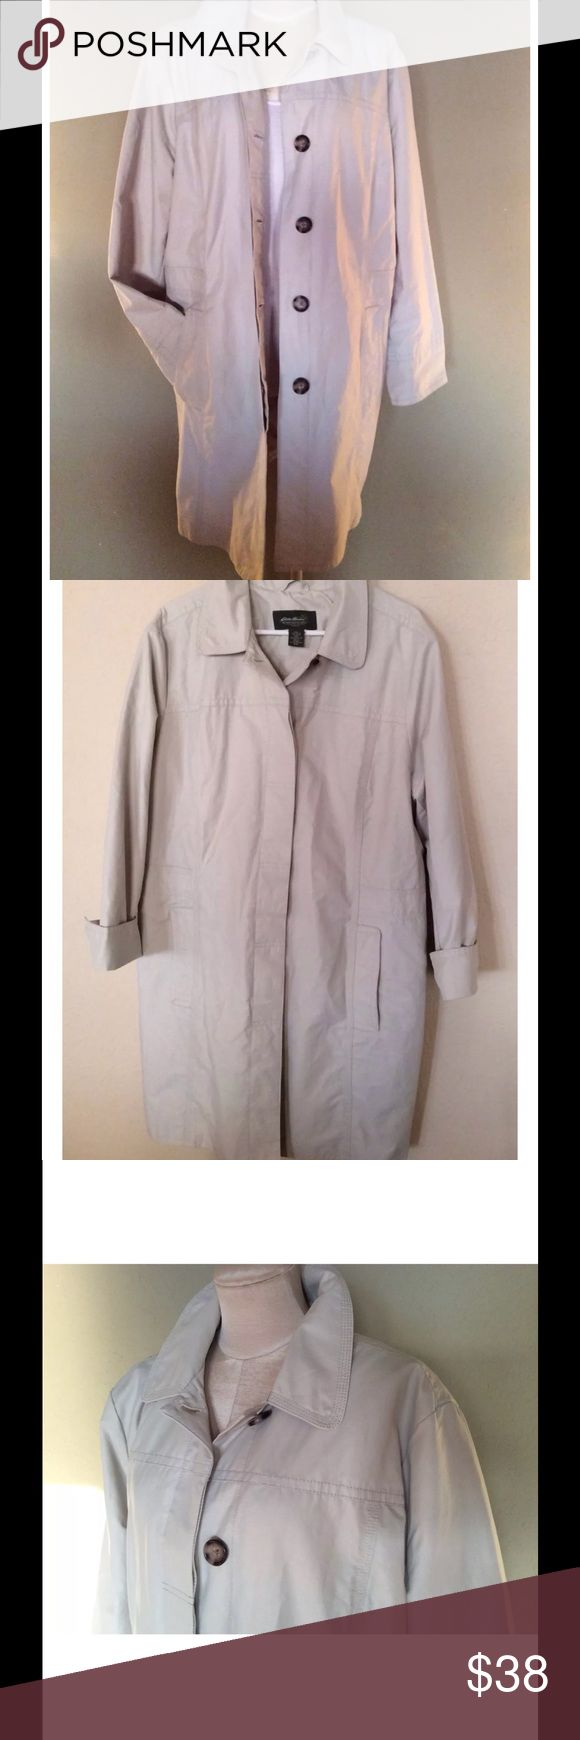 Eddie Bauer Beige Trench Car Coat Long Jacket Eddie Bauer Woman Trench Style Car Coat in Cotton Nylon Blend Water Repellant Fabric. Fully lined. Buff Beige Color. Easy care, machine wash   Preowned in very good condition.  Classic, cute jacket💕  Wonderful details: finished seams, concealed buttons, cuffable bracelet sleeves, interior pocket, back vent, two lined side seam pockets. Hard to find simple trench style jacket with understated detailed trimming.  Measurements approximate, Bust…